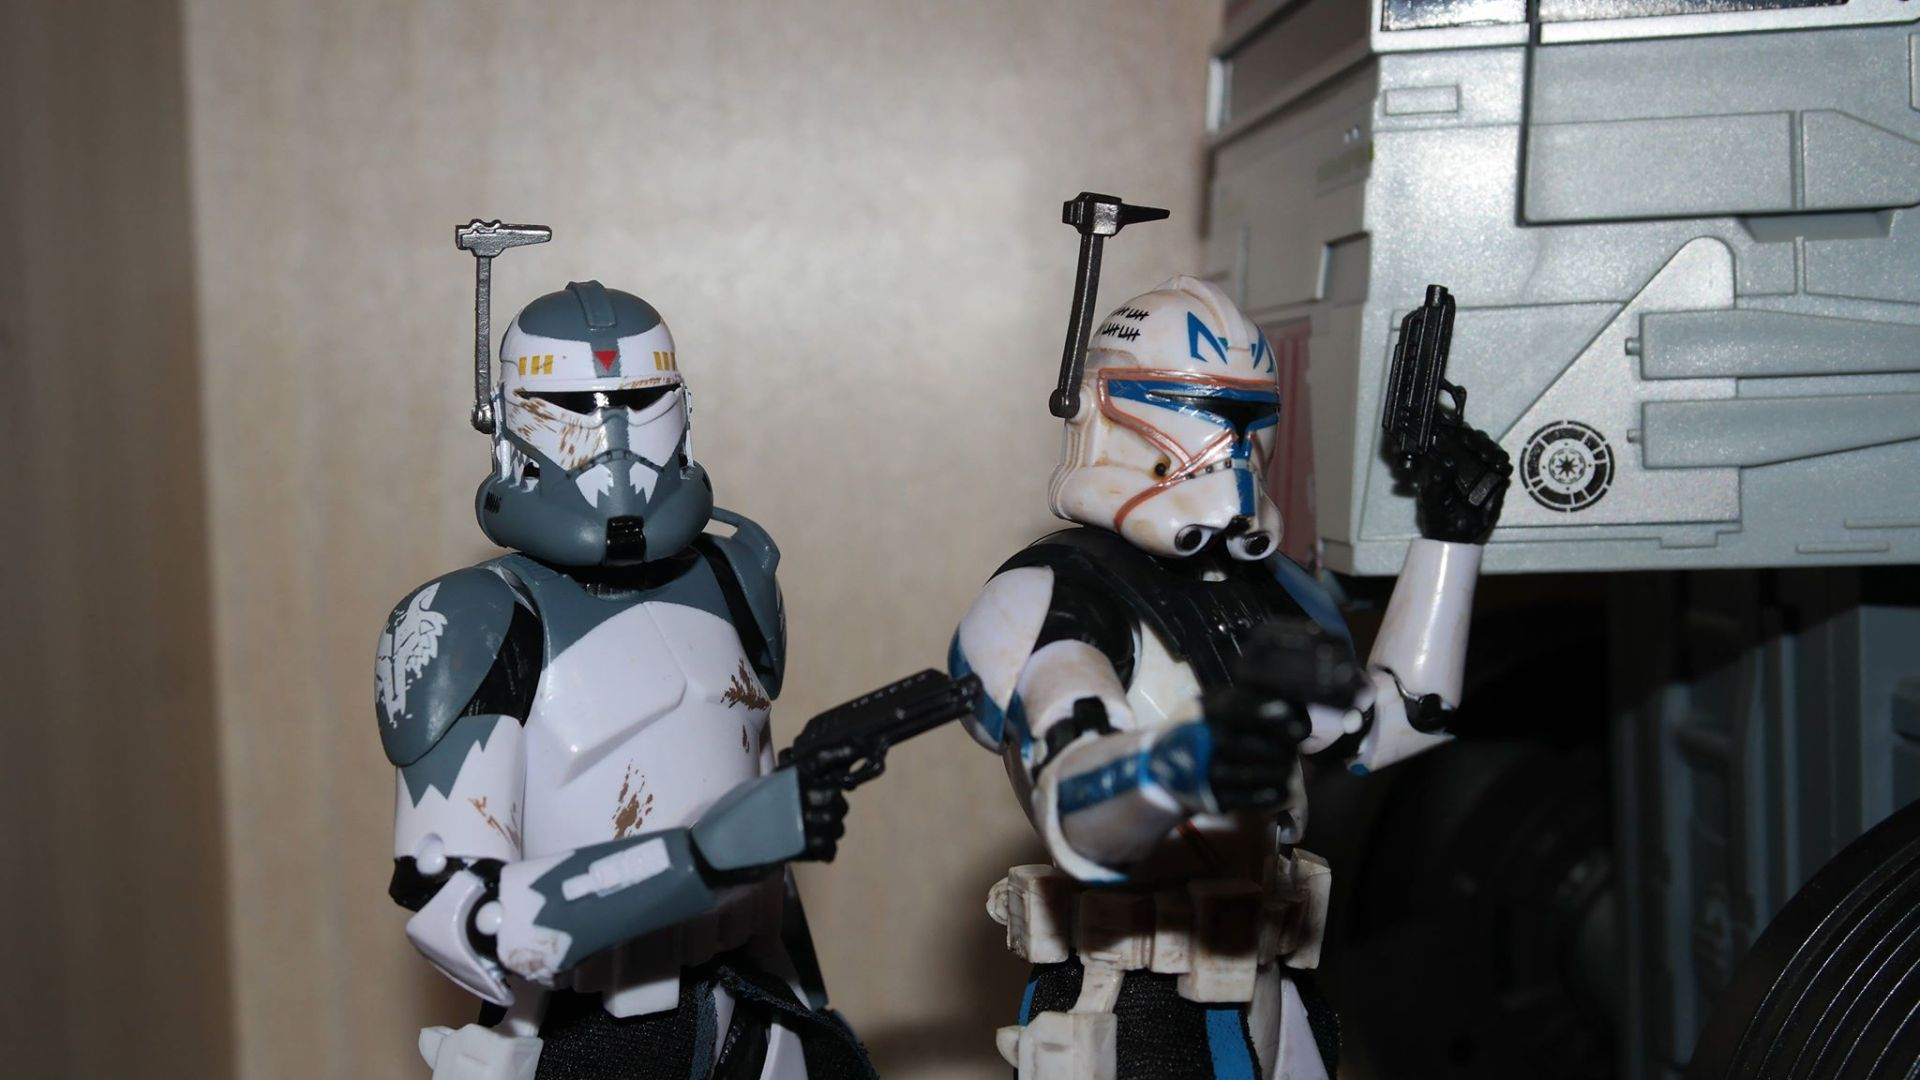 Hasbro-Black-Series-Clone-Commander-Wolffe-Review